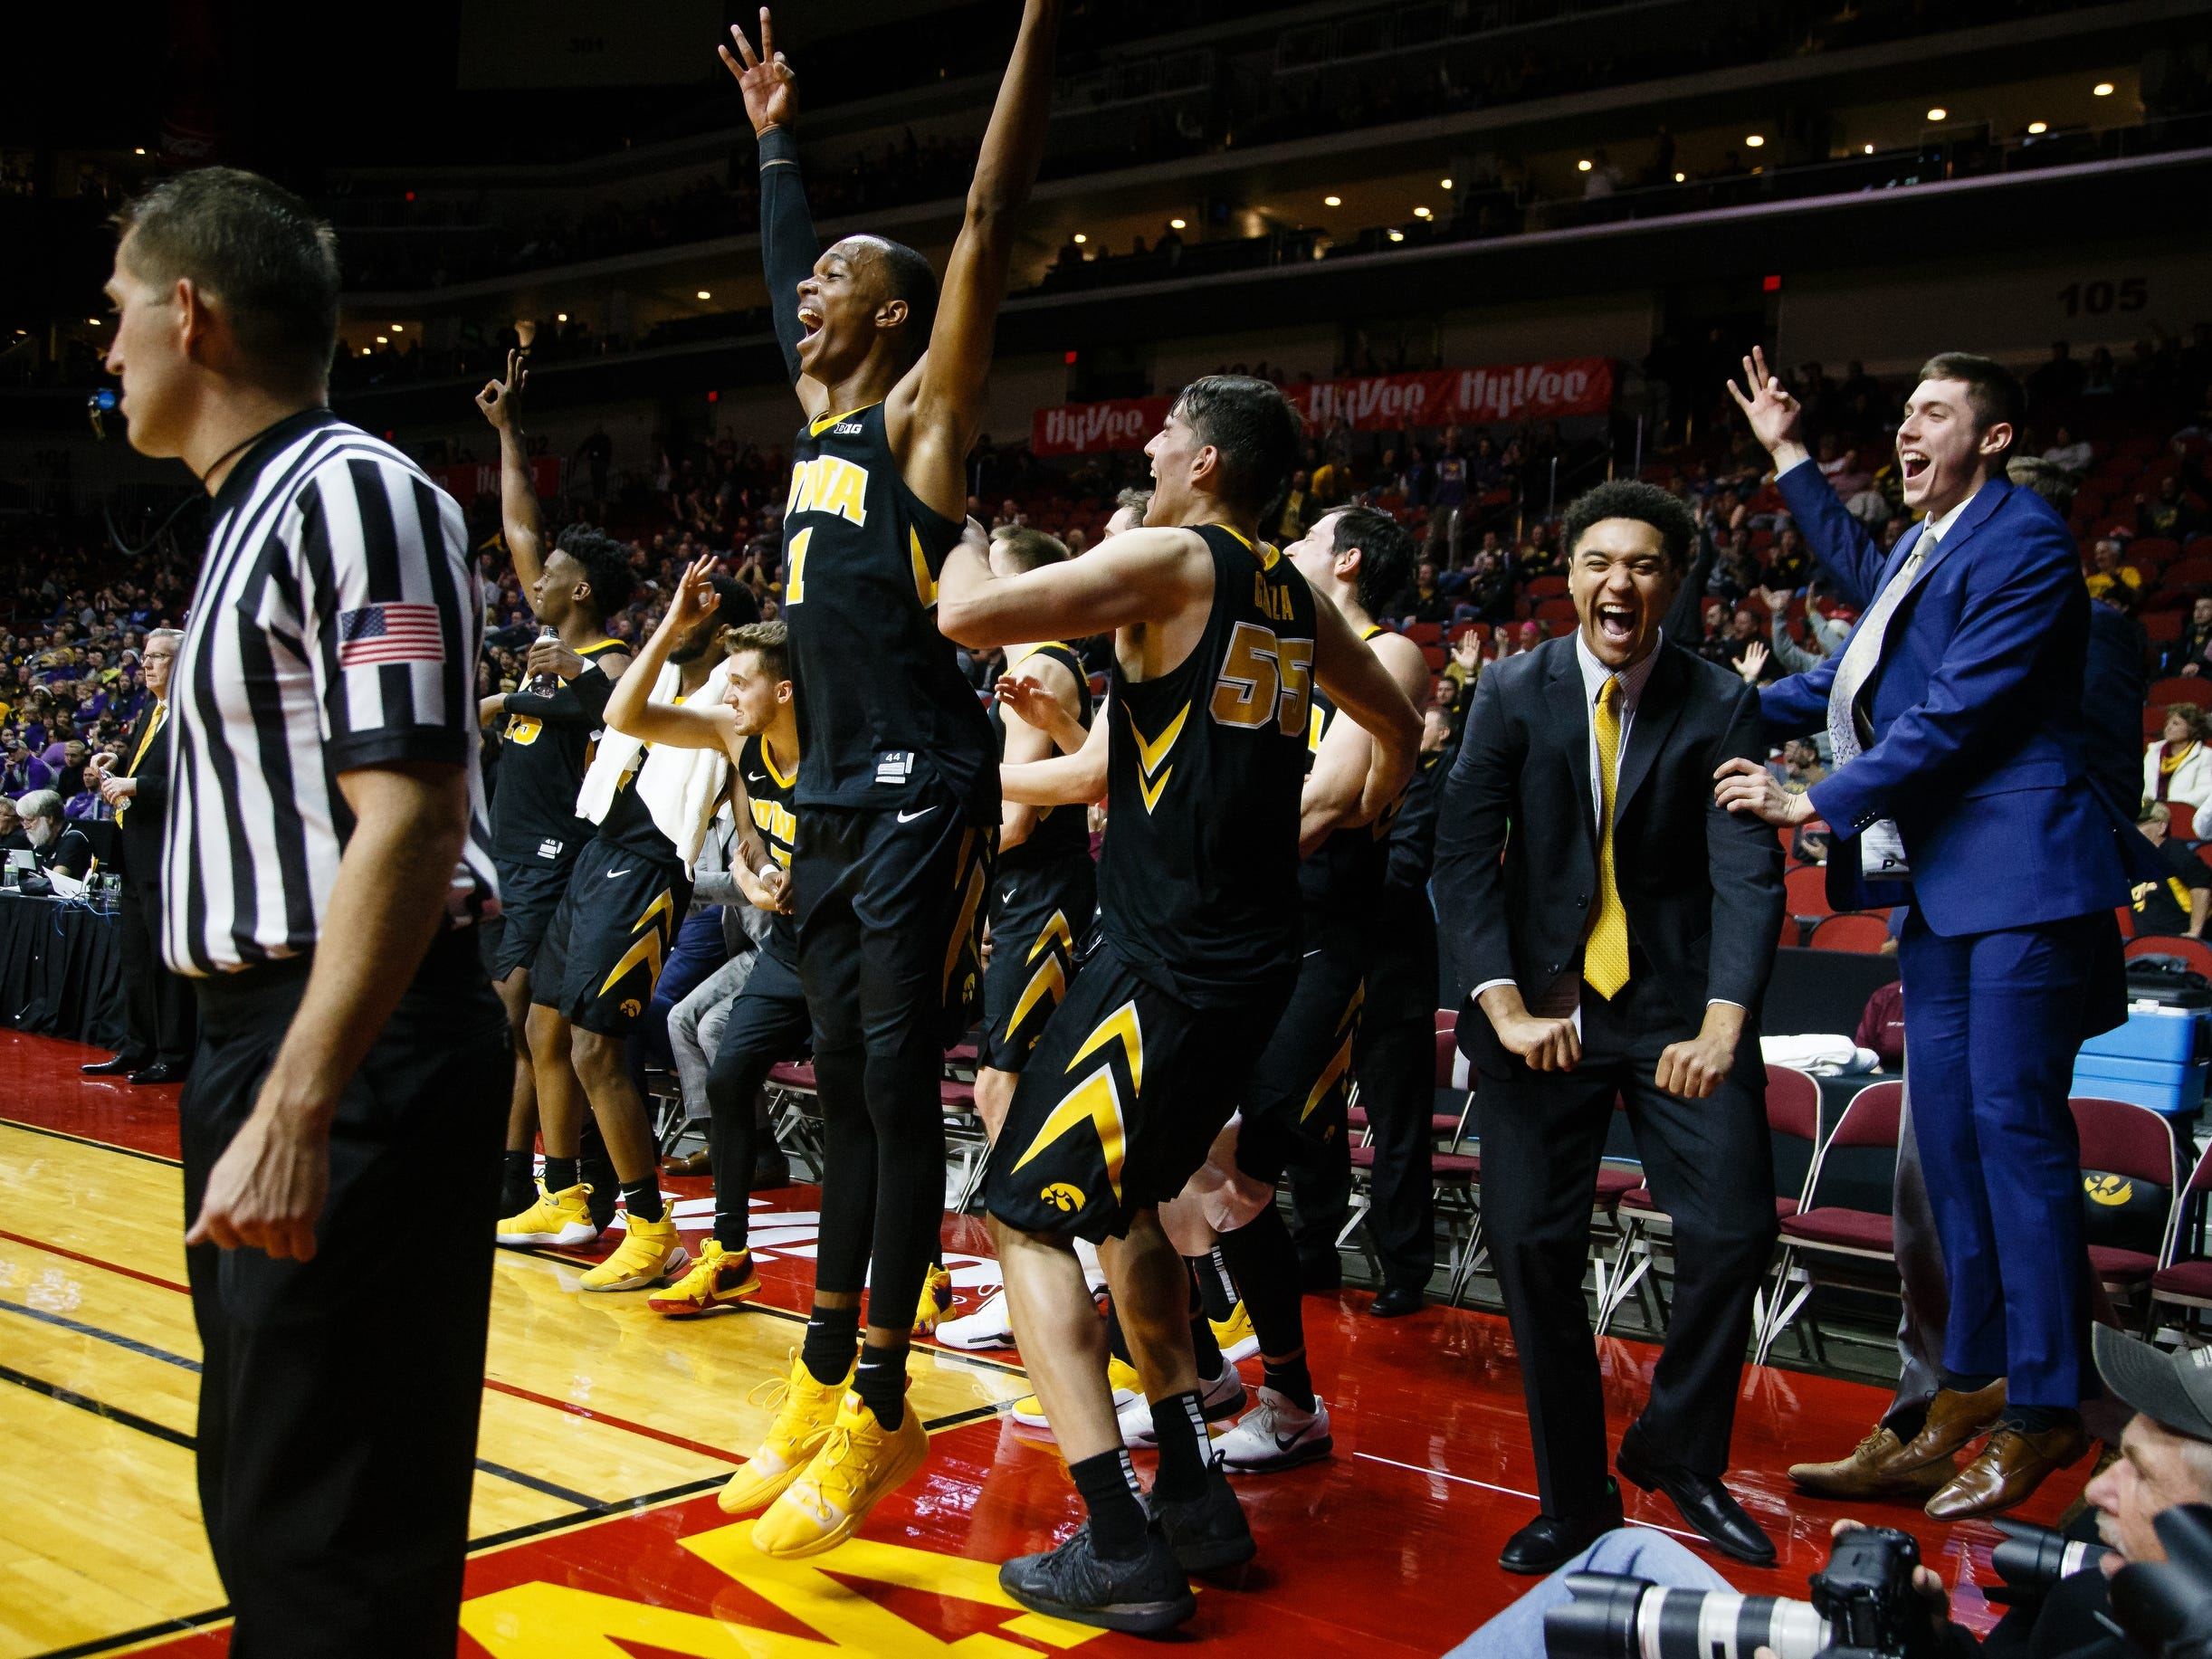 The Iowa bench erupts after Austin Ash made a three during their basketball game at the Hy-Vee Classic on Saturday, Dec. 15, 2018, in Des Moines. Iowa would go on to defeat UNI 77-54.